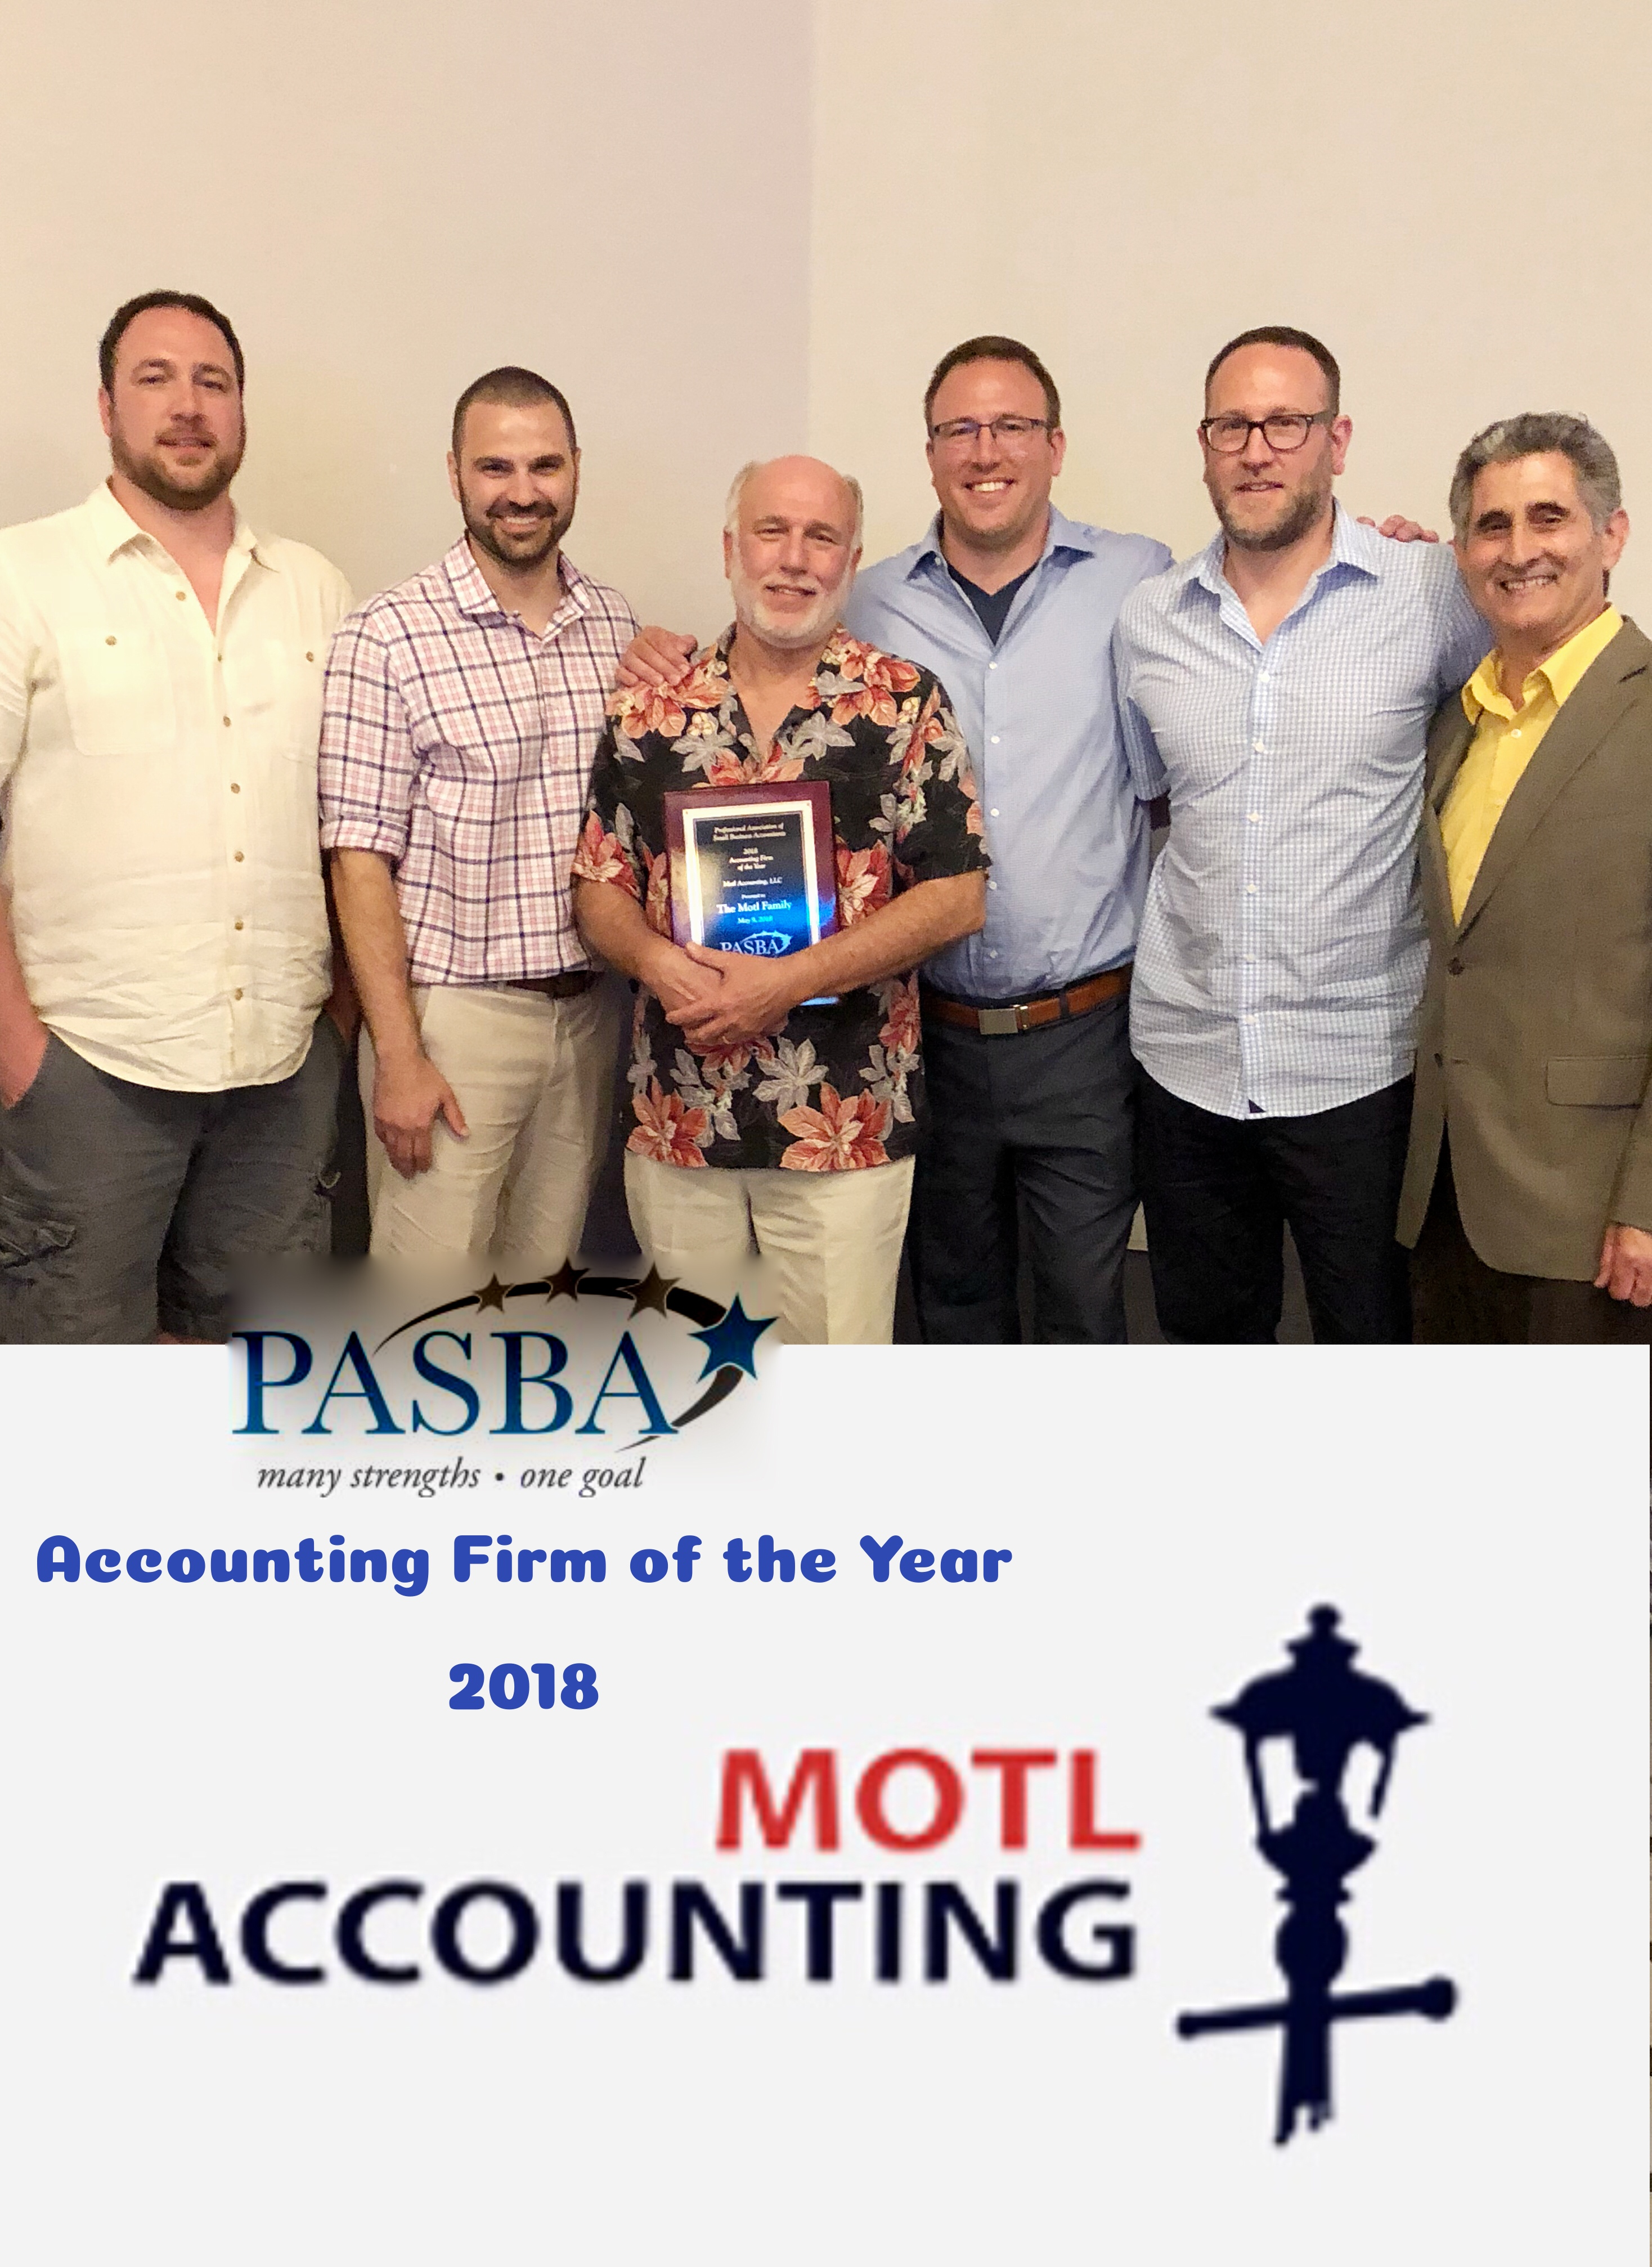 Motl Accounting wins 2018 PASBA Award – Accounting Firm of the Year